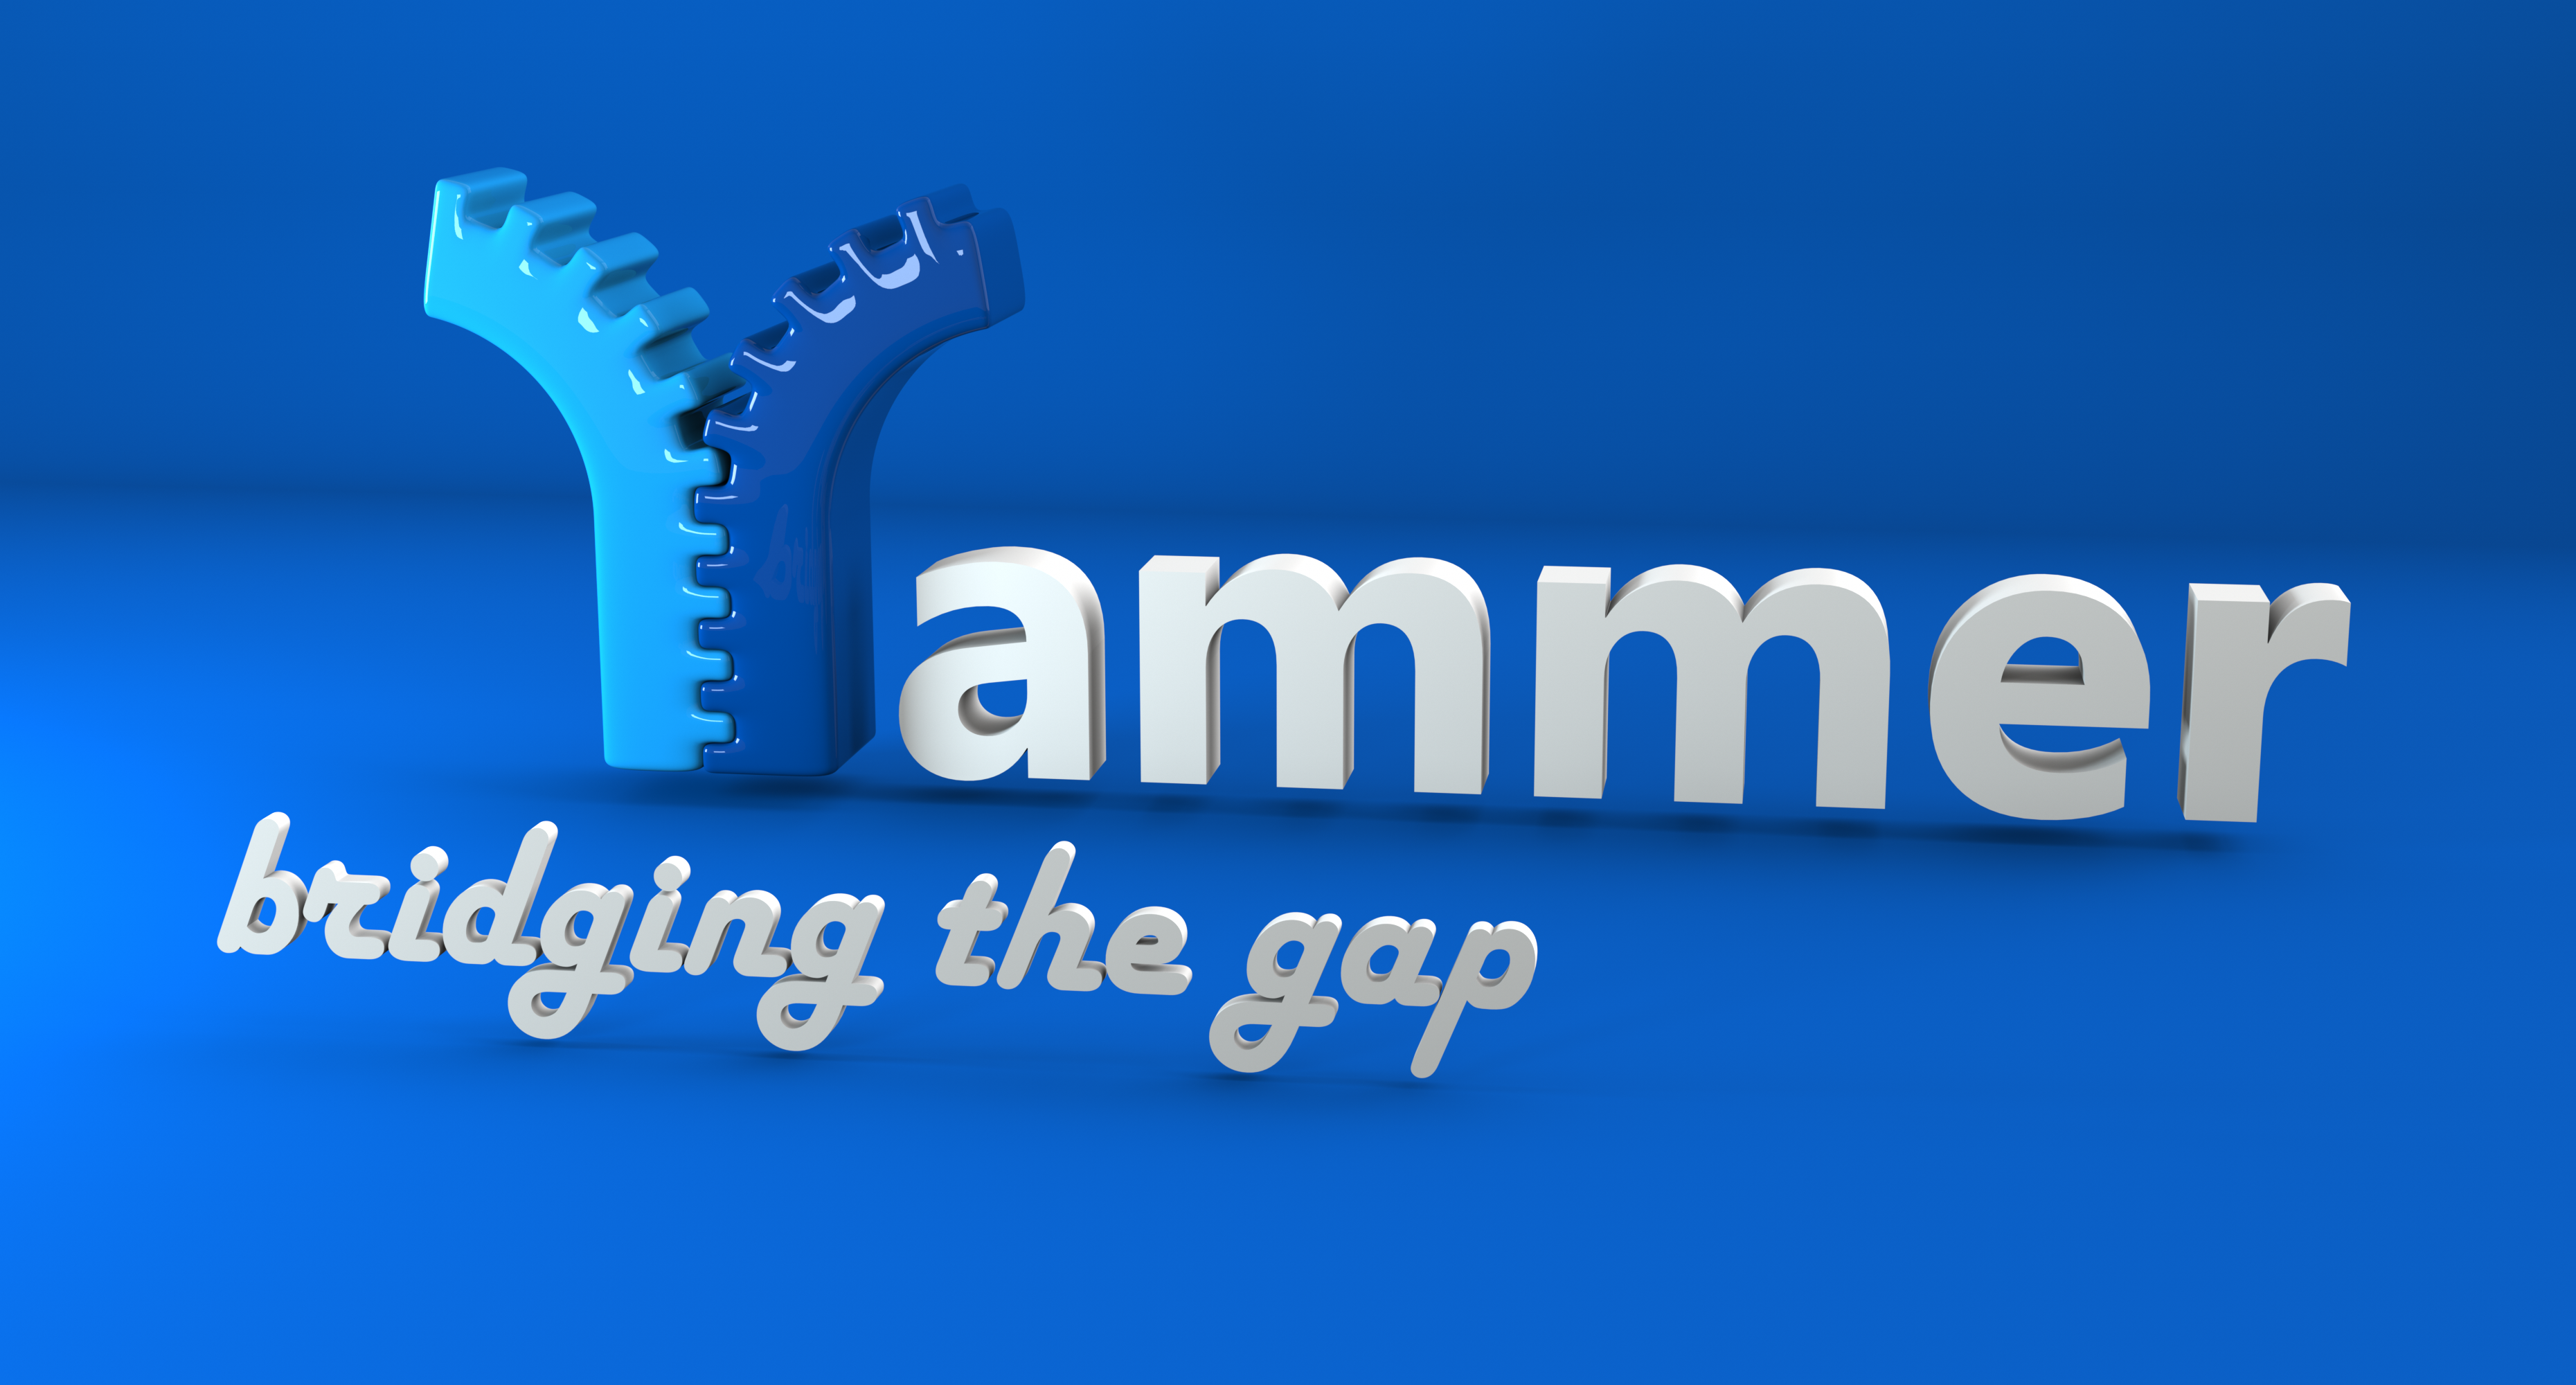 Yammer - bridging the gap still image 3720x2000